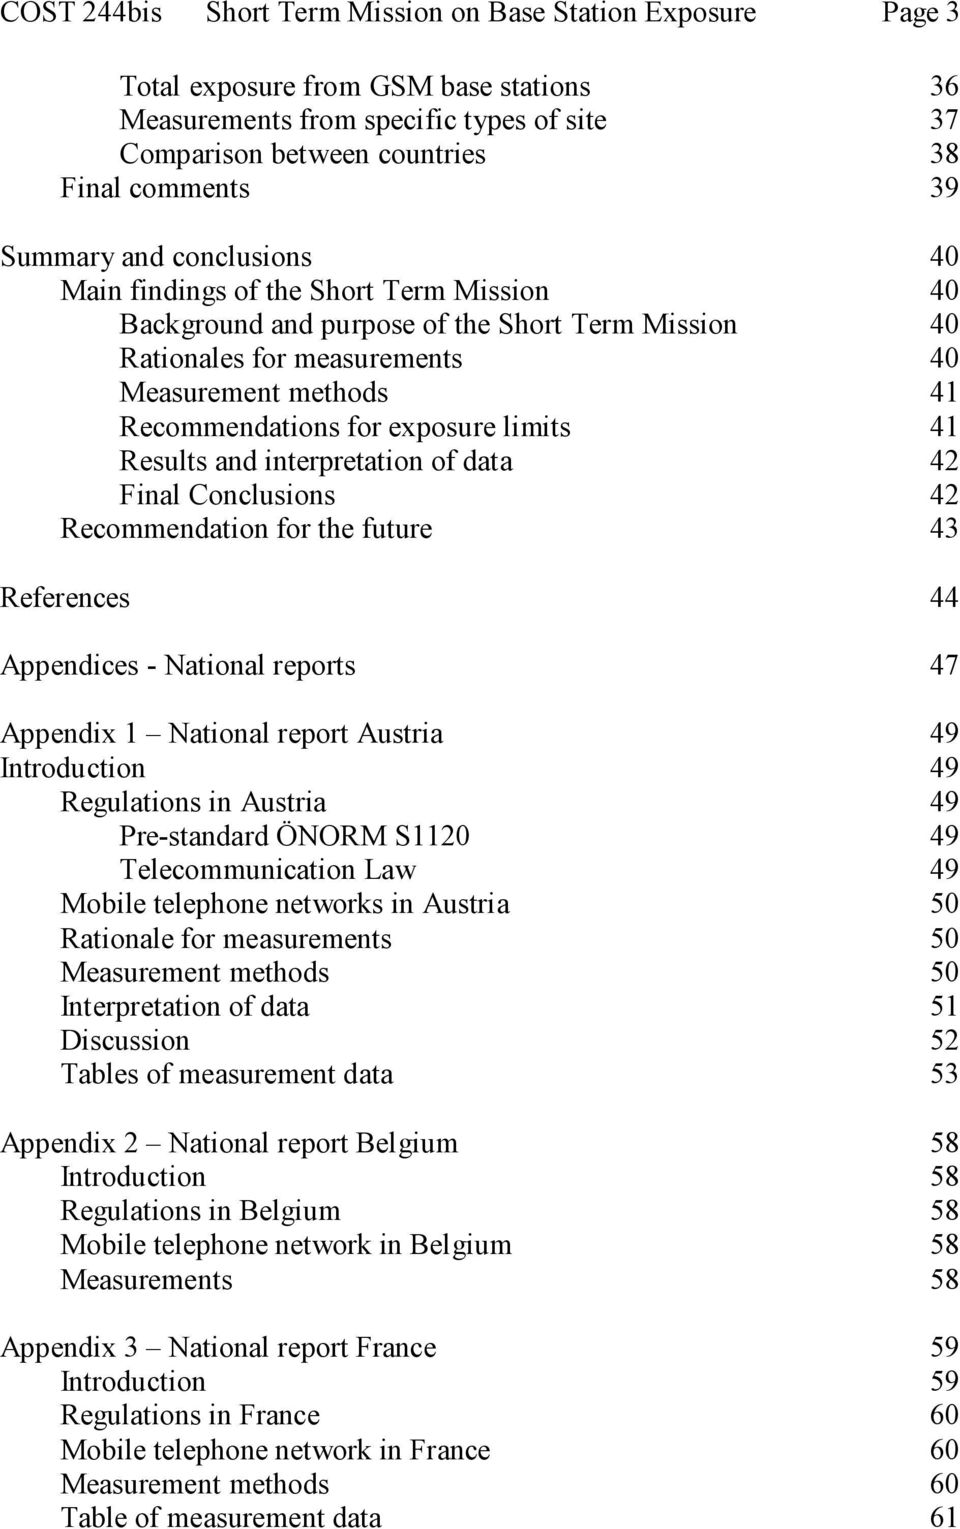 exposure limits 41 Results and interpretation of data 42 Final Conclusions 42 Recommendation for the future 43 References 44 Appendices - National reports 47 Appendix 1 National report Austria 49